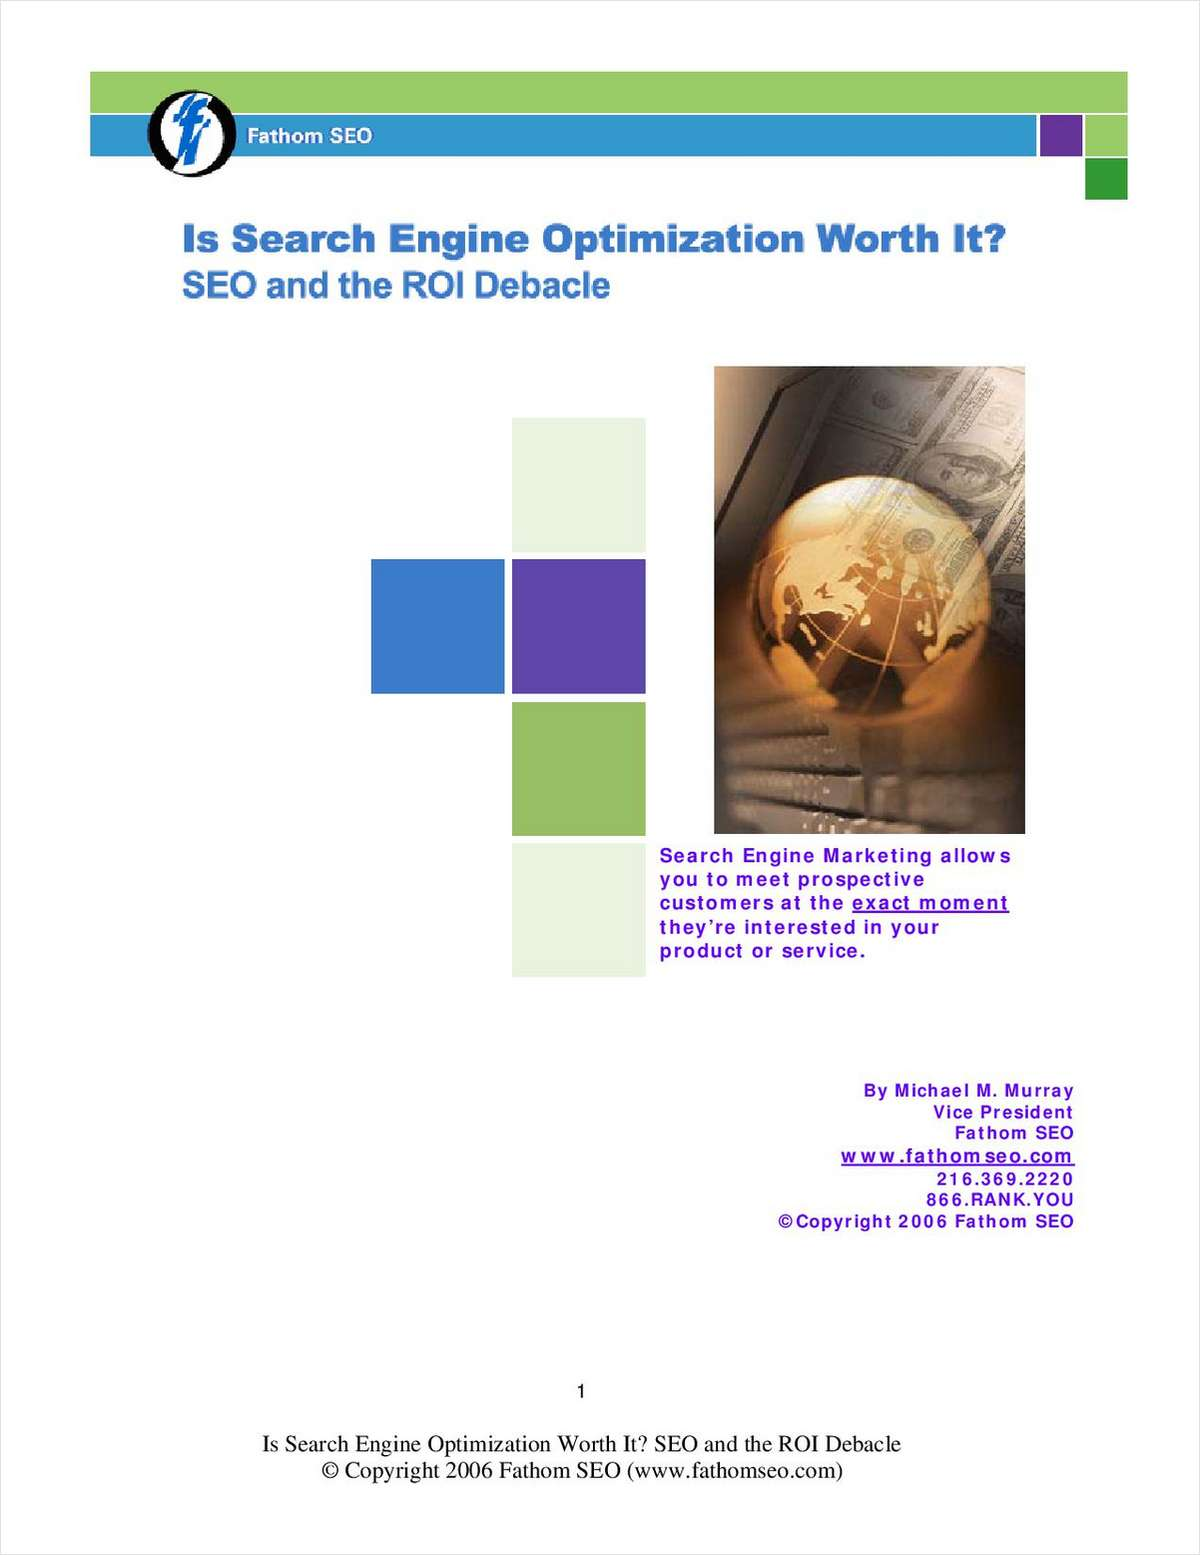 Is Search Engine Optimization (SEO) Worth It?